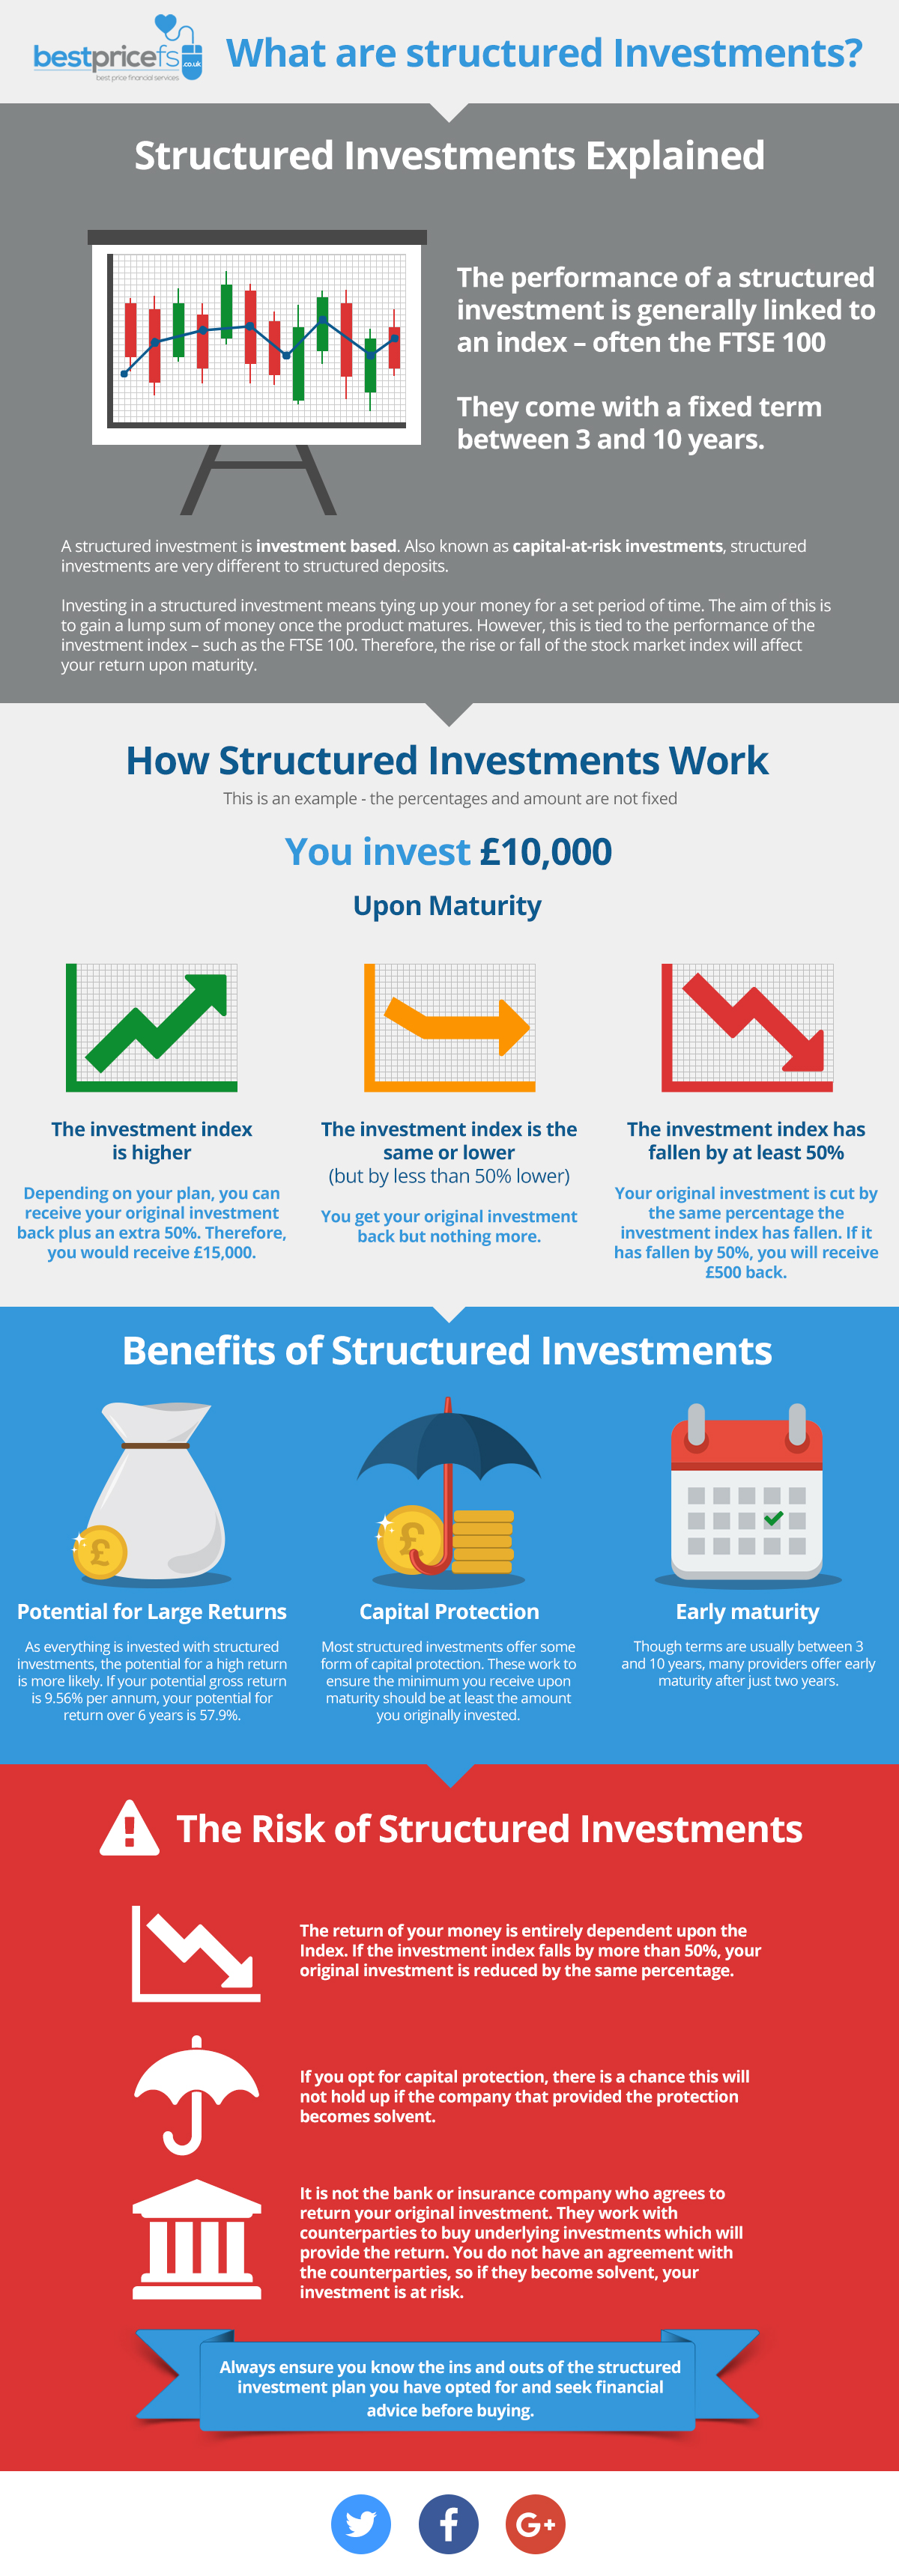 What are Structured Investments?